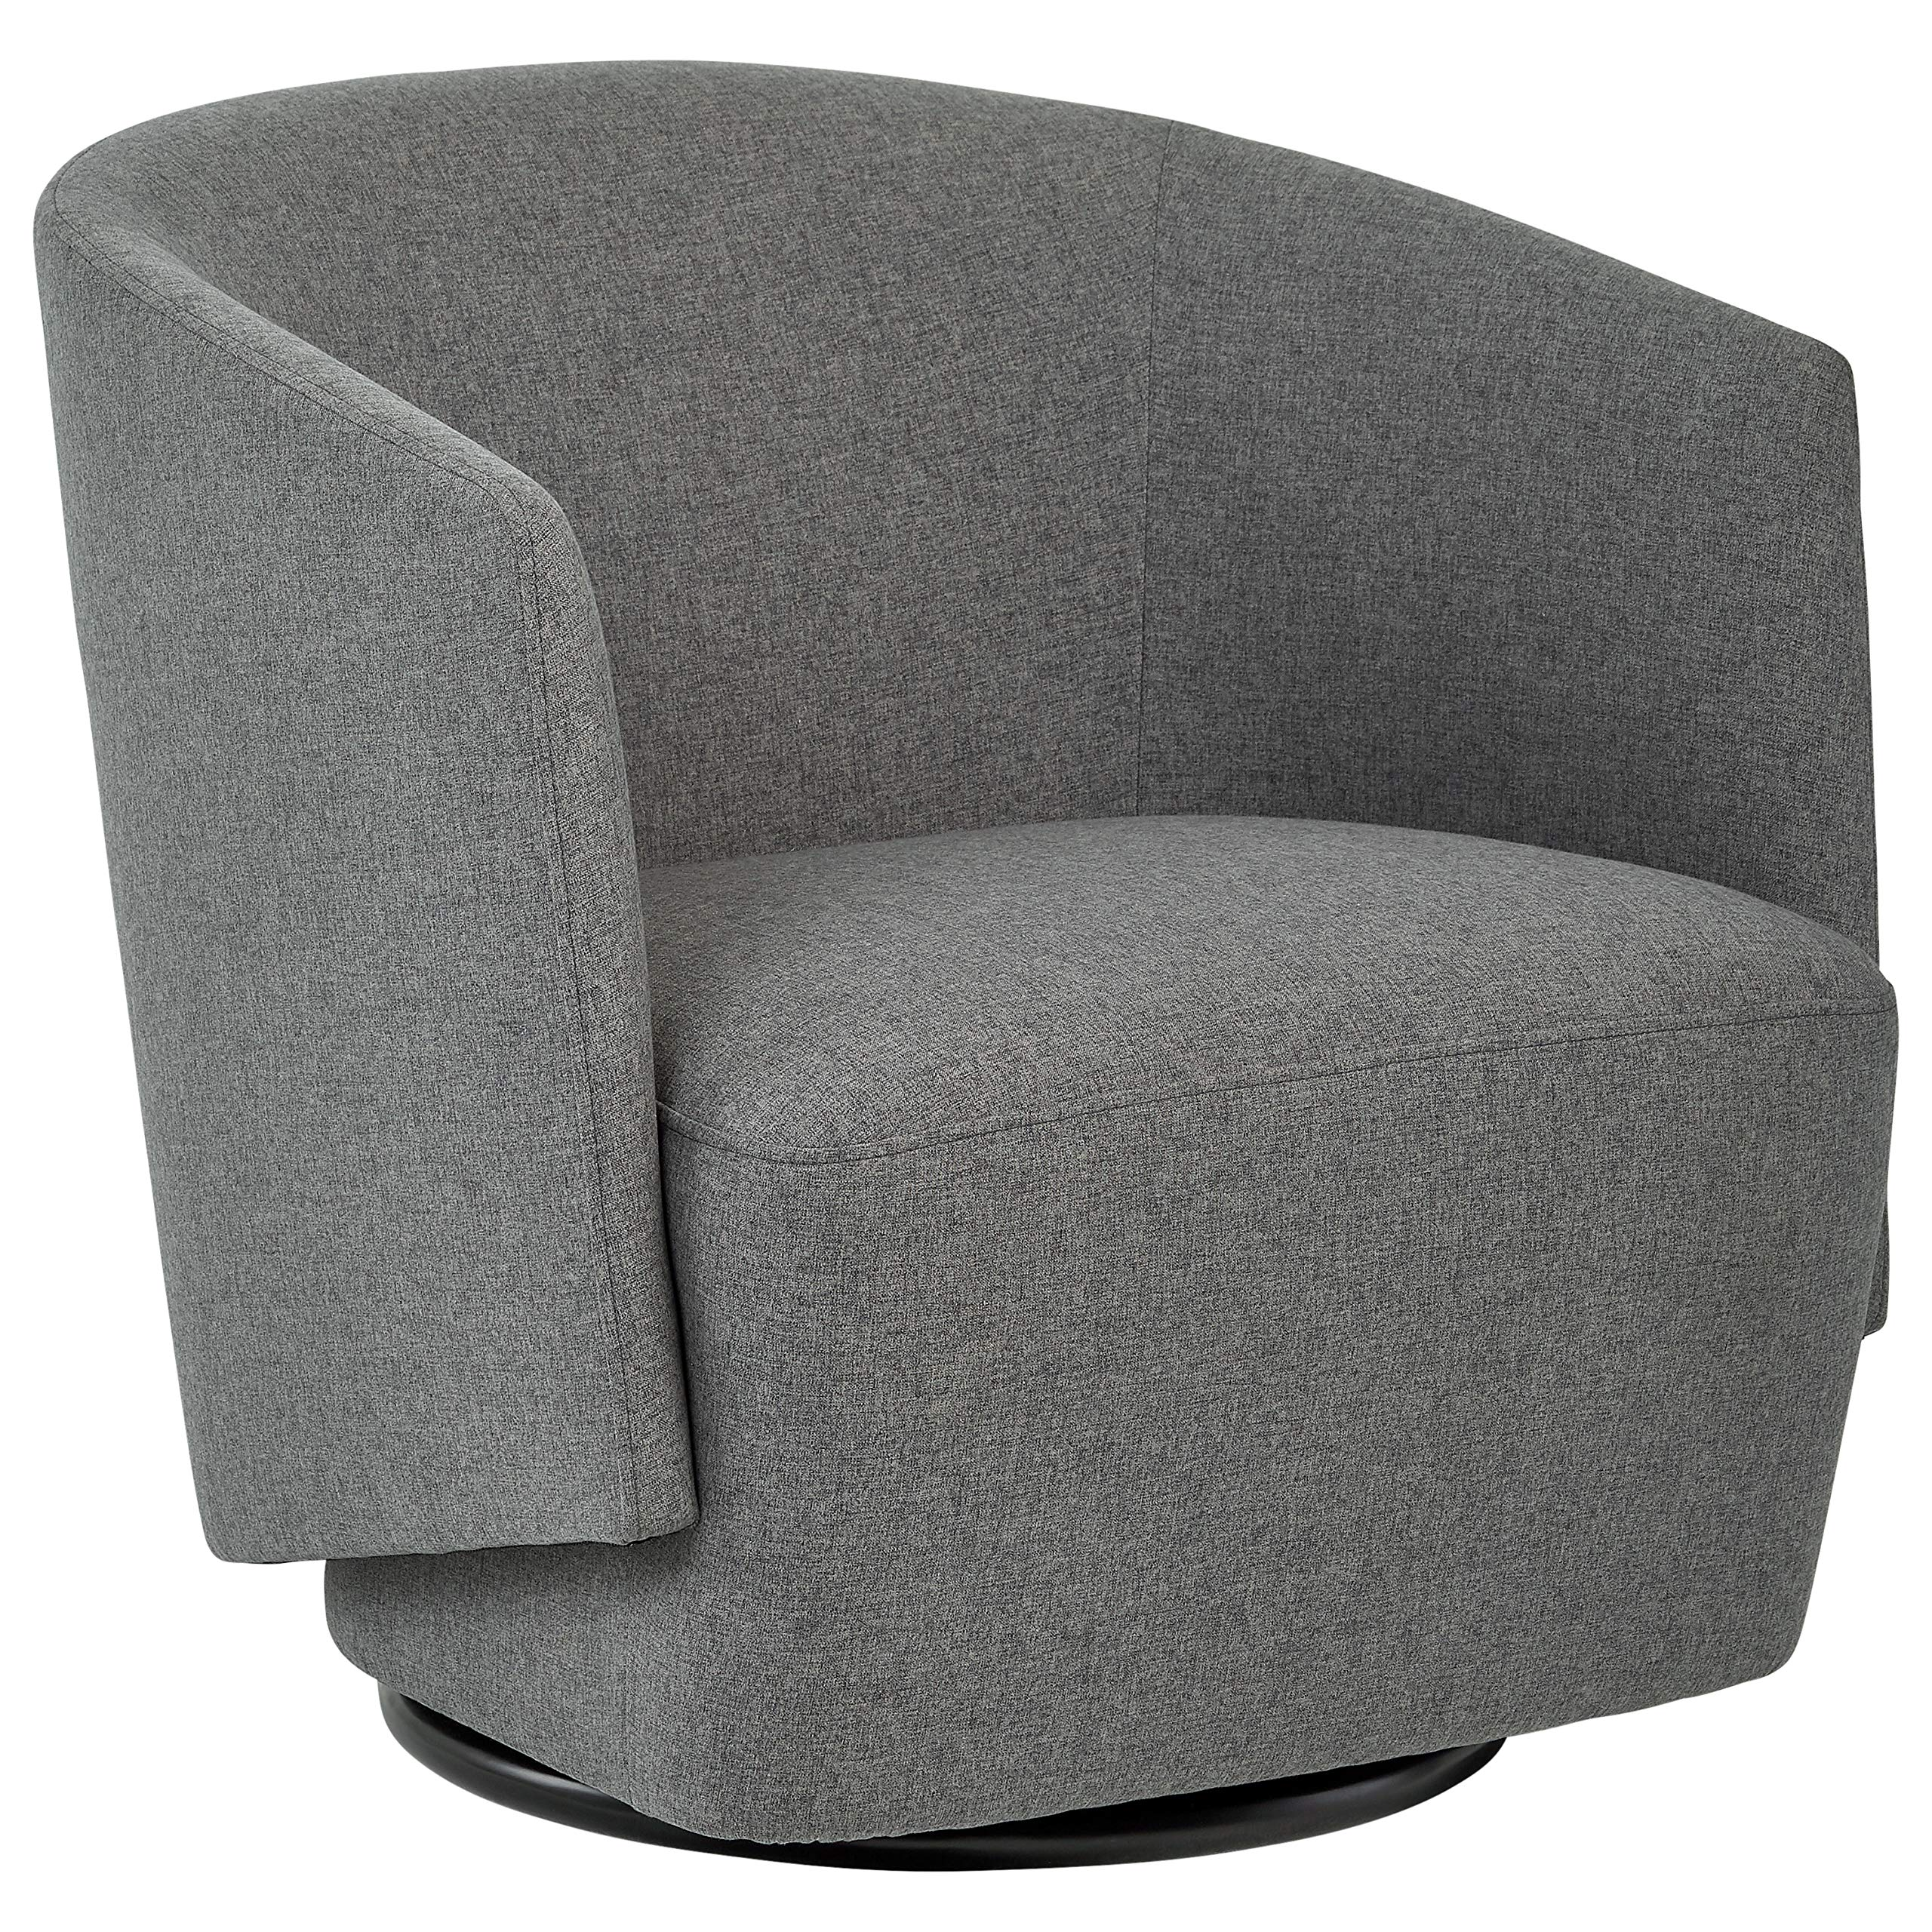 Rivet Coen Contemporary Modern Upholstered Accent Swivel Chair, 30''W, Charcoal by Rivet